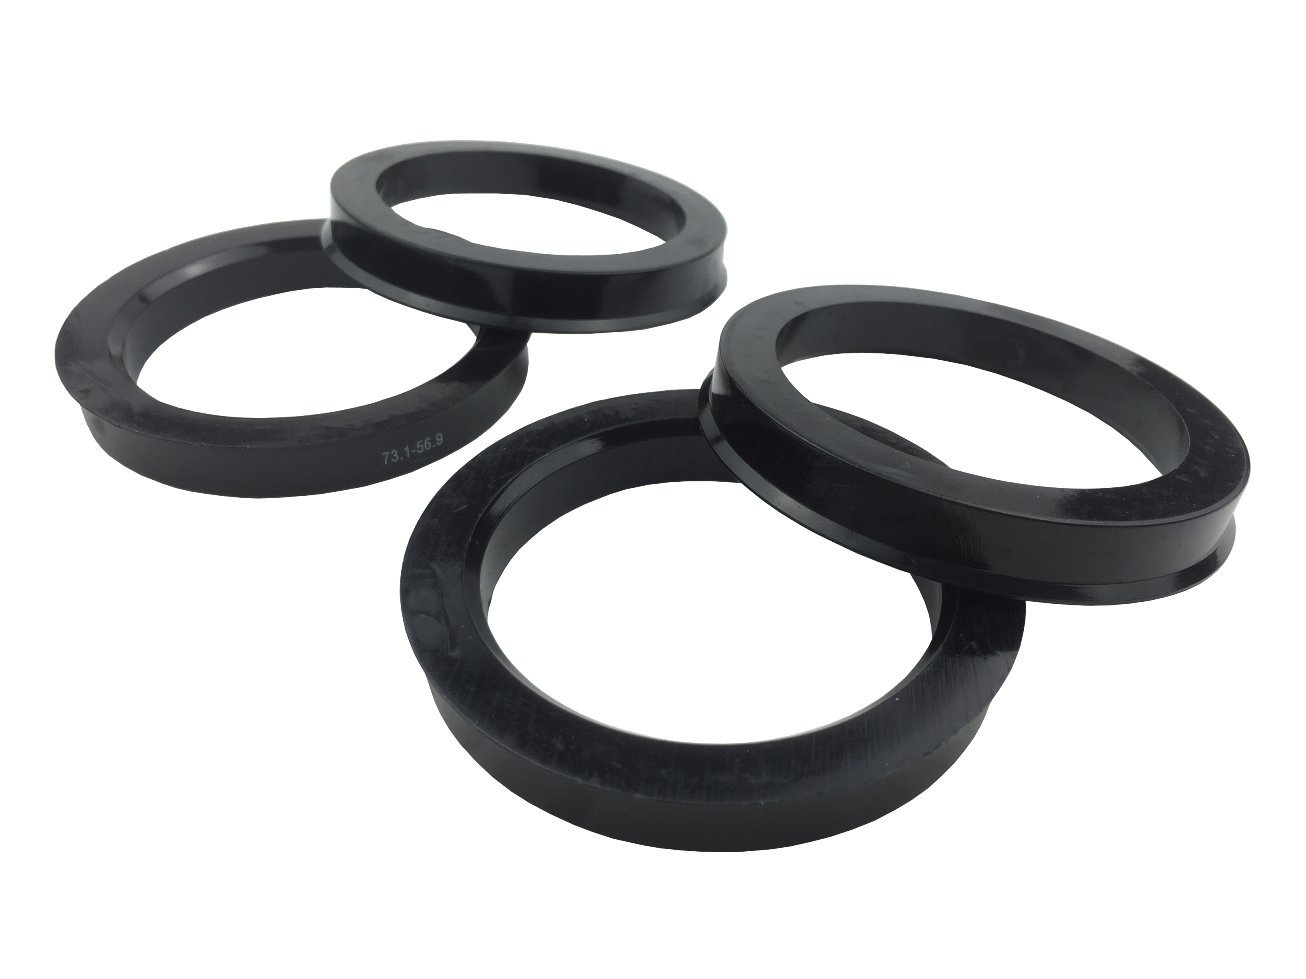 4 Pieces - Hub Centric Rings - 73.1mm OD to 56.9mm ID - Black Poly Carbon Hub Rings JianDa